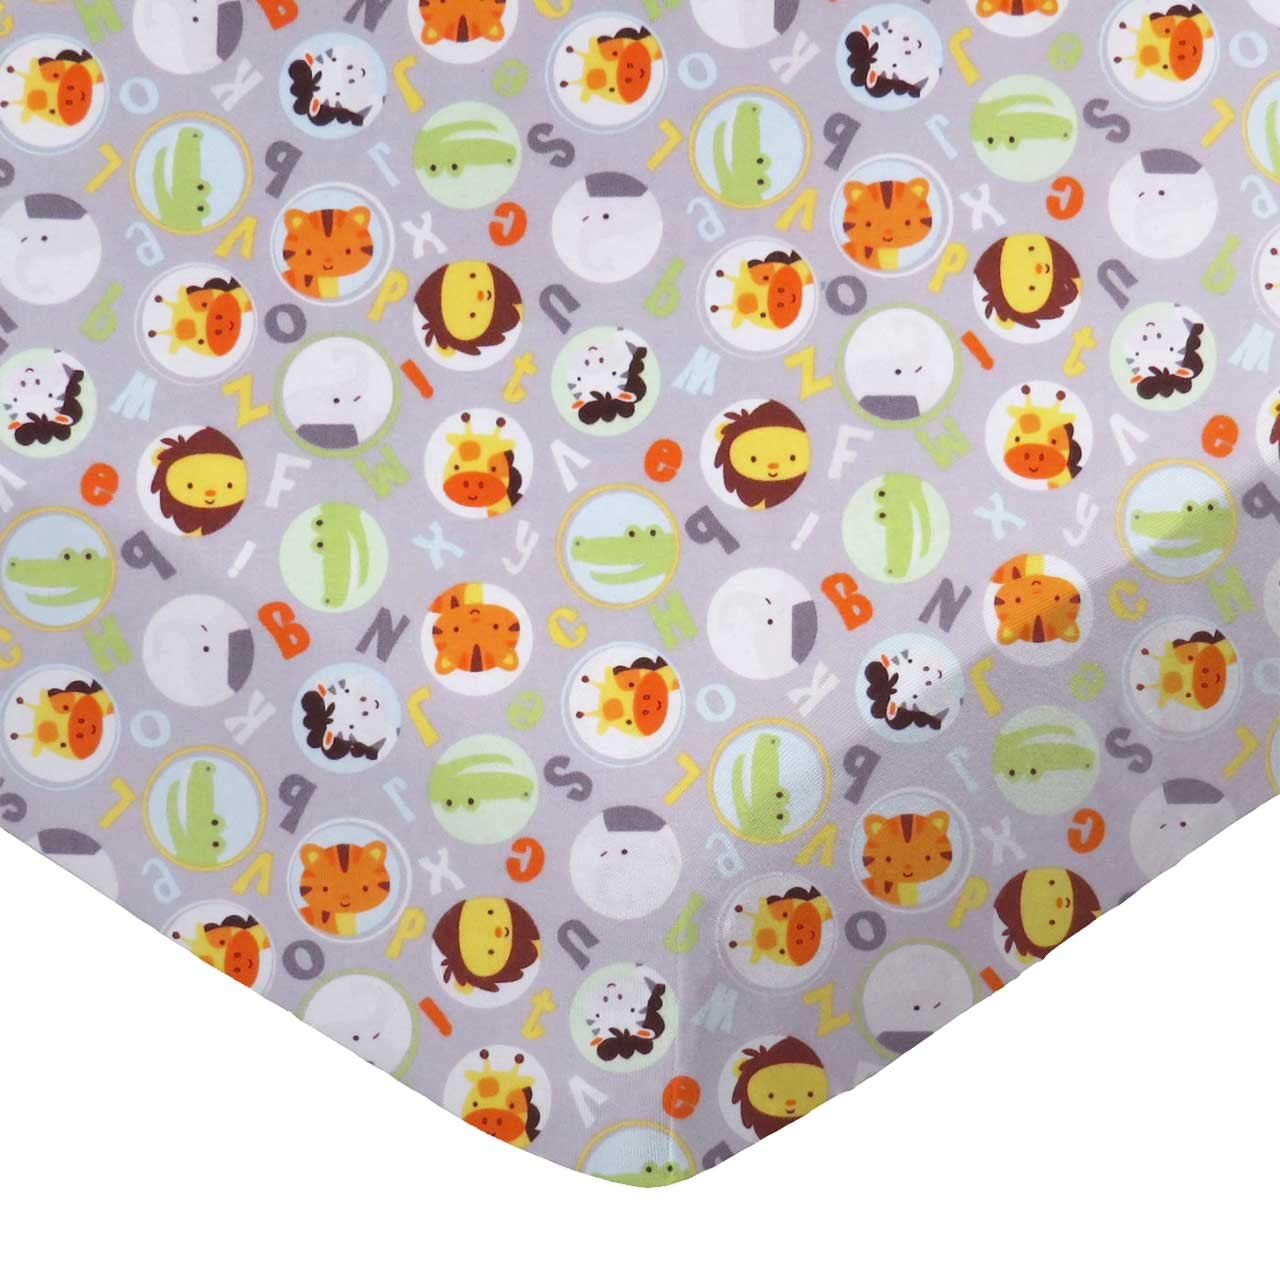 SheetWorld Fitted 100% Cotton Flannel Cradle Sheet 18 x 36, ABC Animals Gray, Made in USA by SHEETWORLD.COM